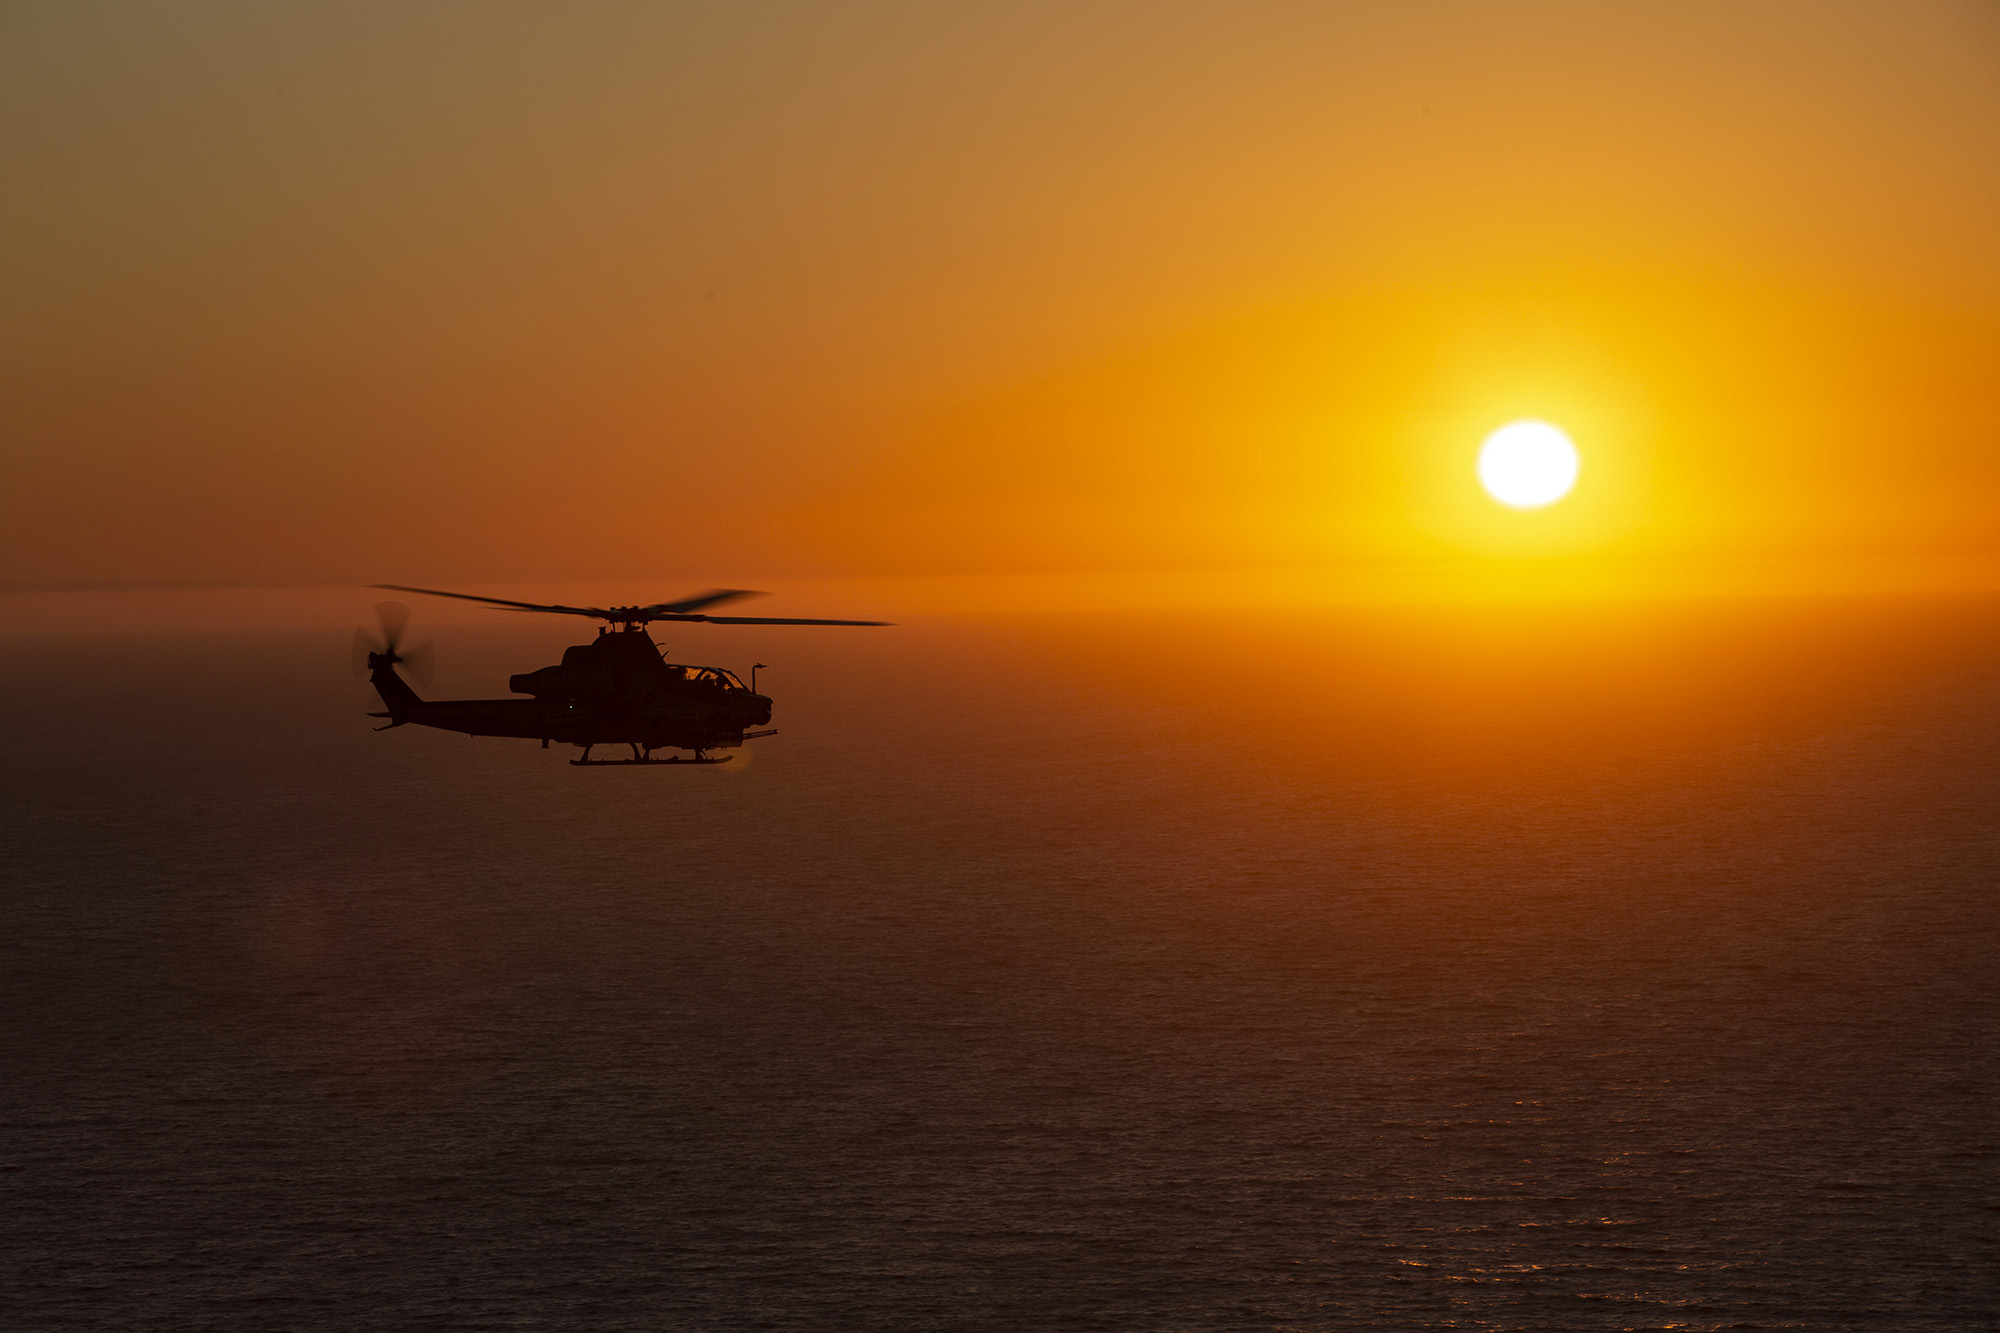 A U.S. Marine Corps AH-1Z Viper conducts Defense of Amphibious Task Force training during Exercise Trident Storm at San Clemente Island, Calif., July 30, 2020. (Cpl. Levi J. Guerra/Marine Corps)